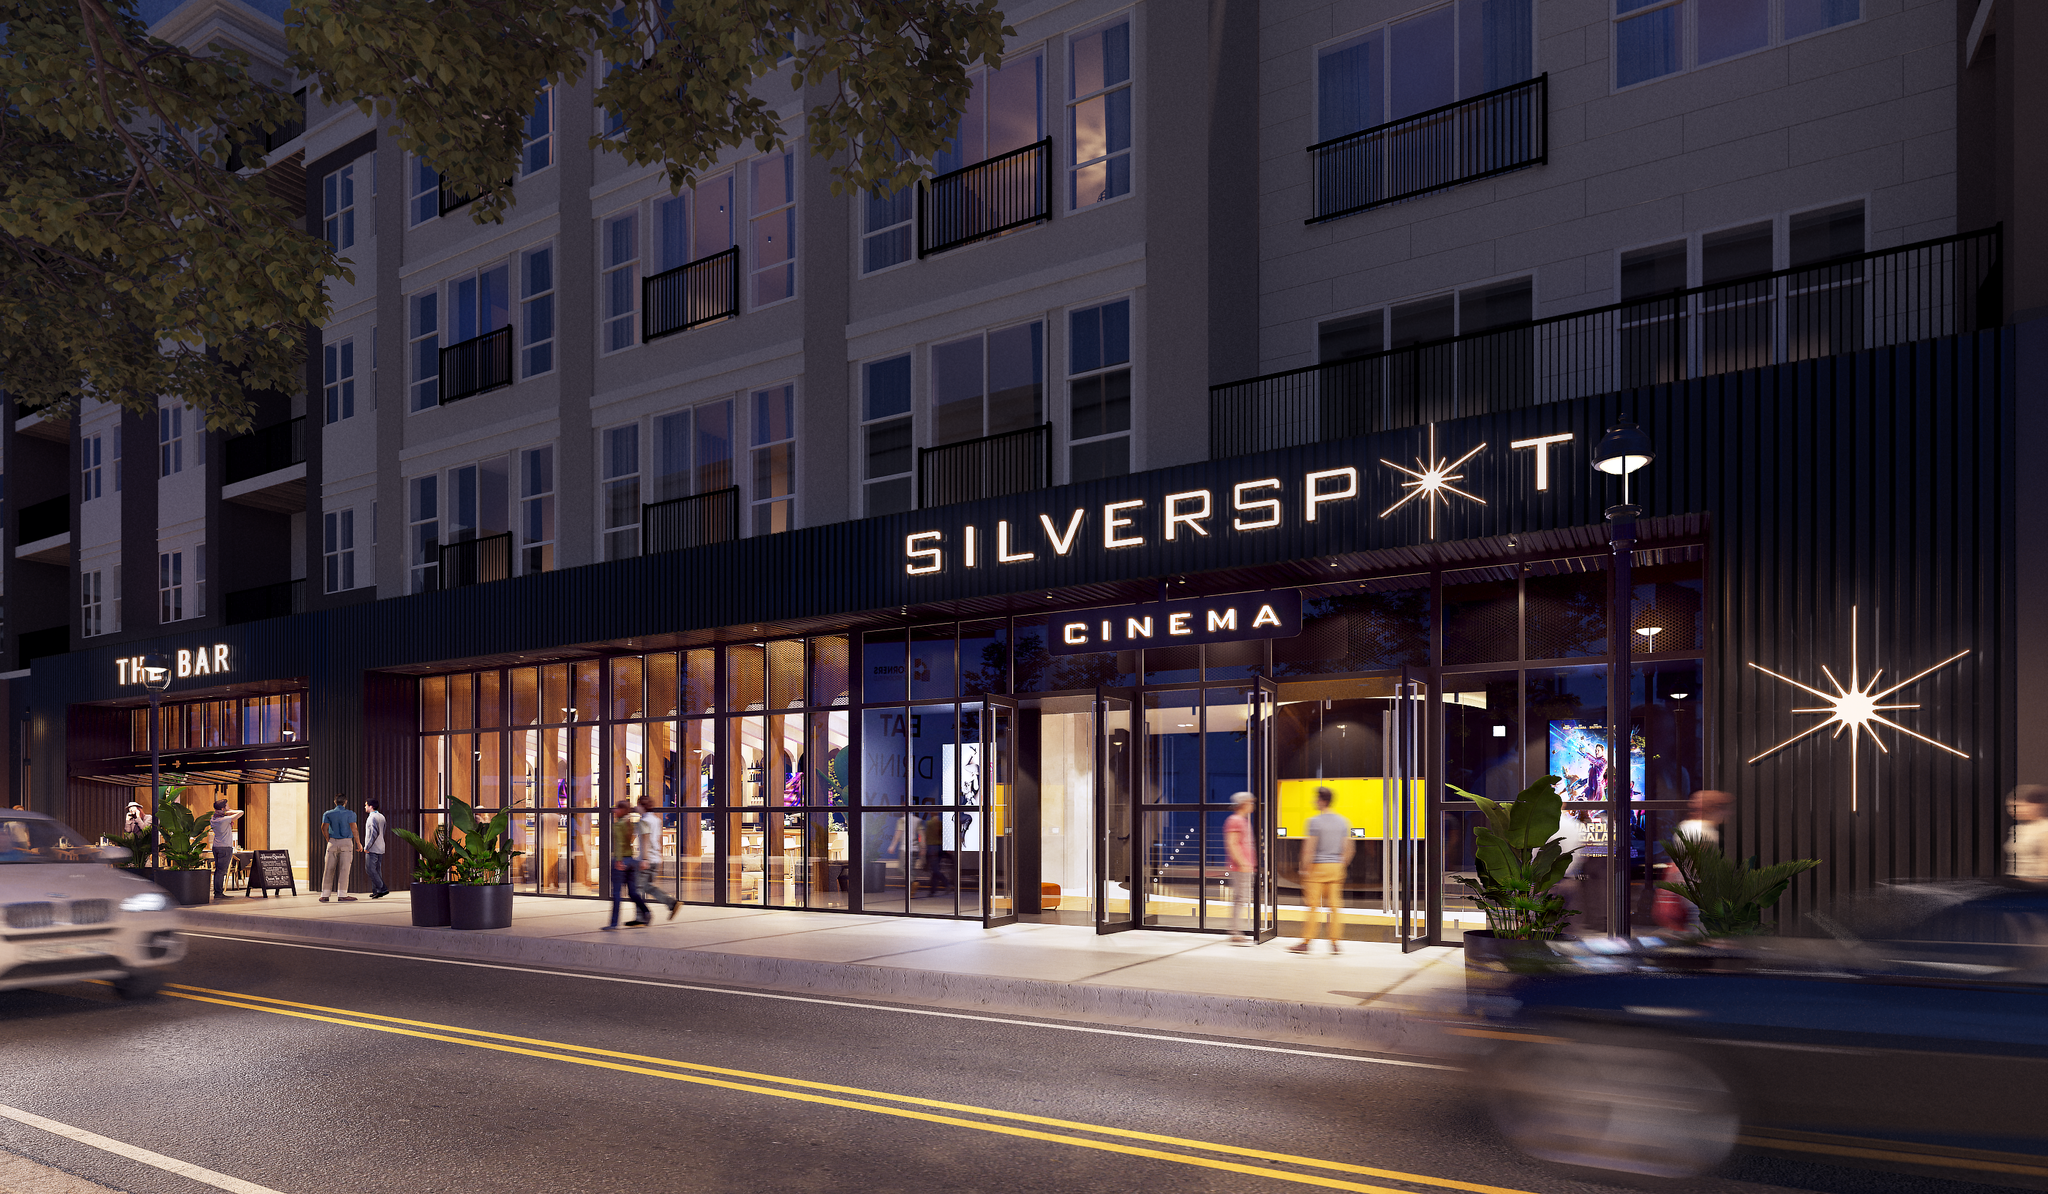 Silverspot Cinema Will Open in Mid-June